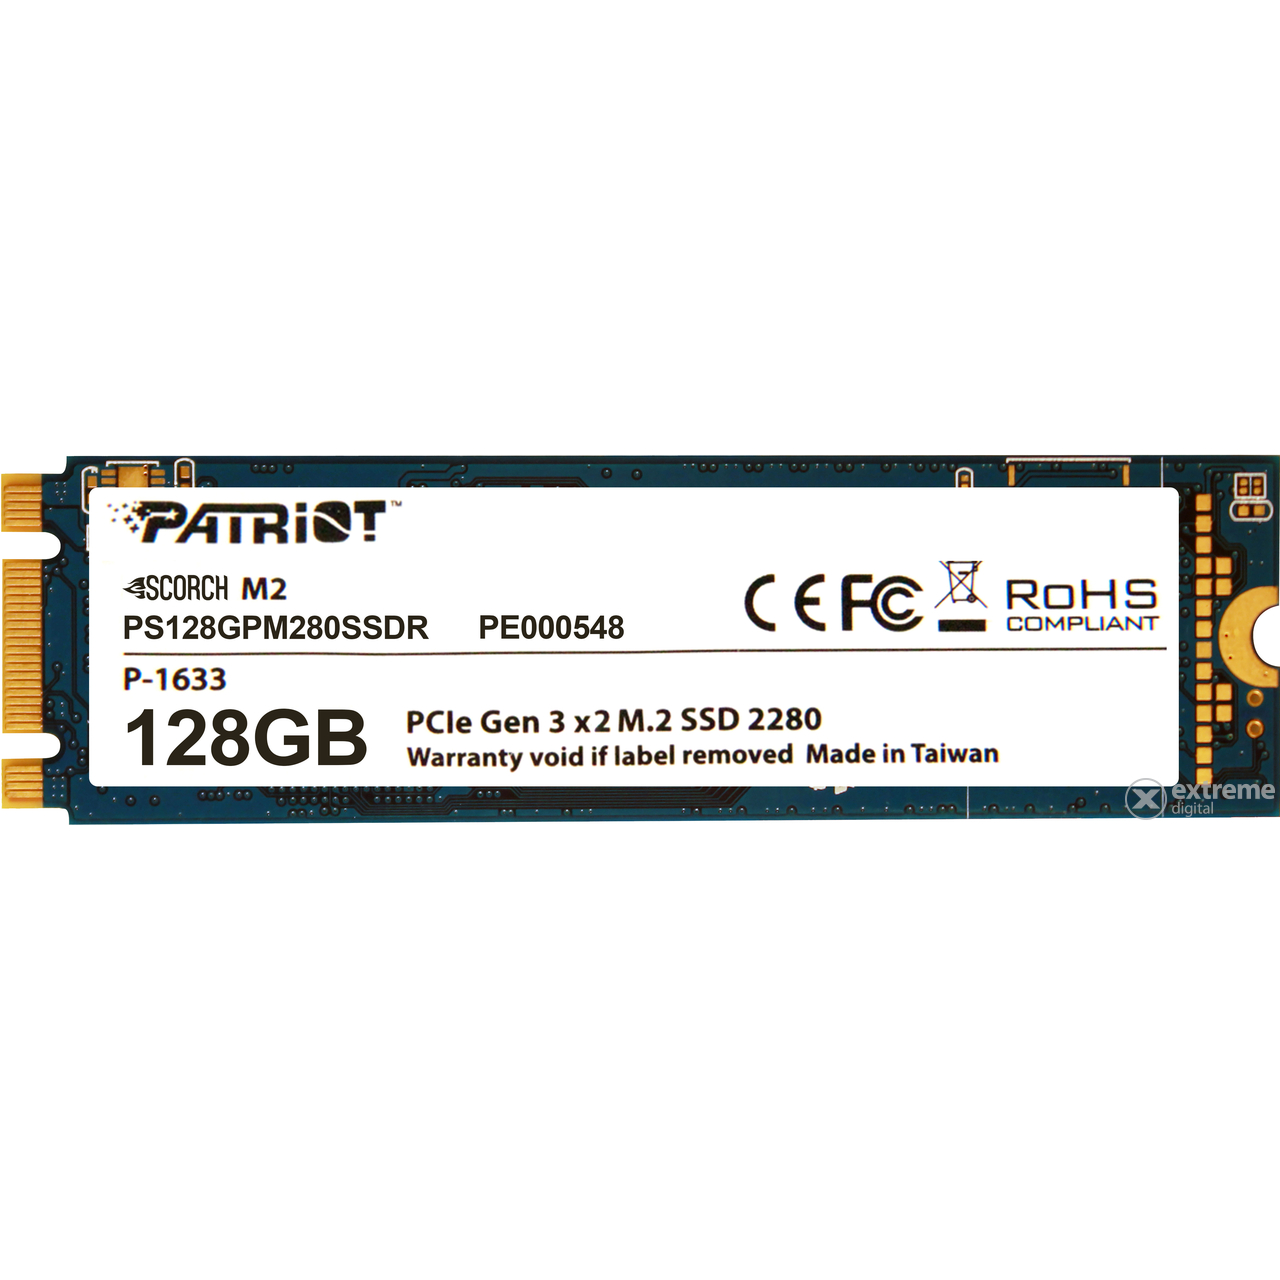 Patriot Scorch 128GB M.2 2280 (PS128GPM280SSDR) SSD